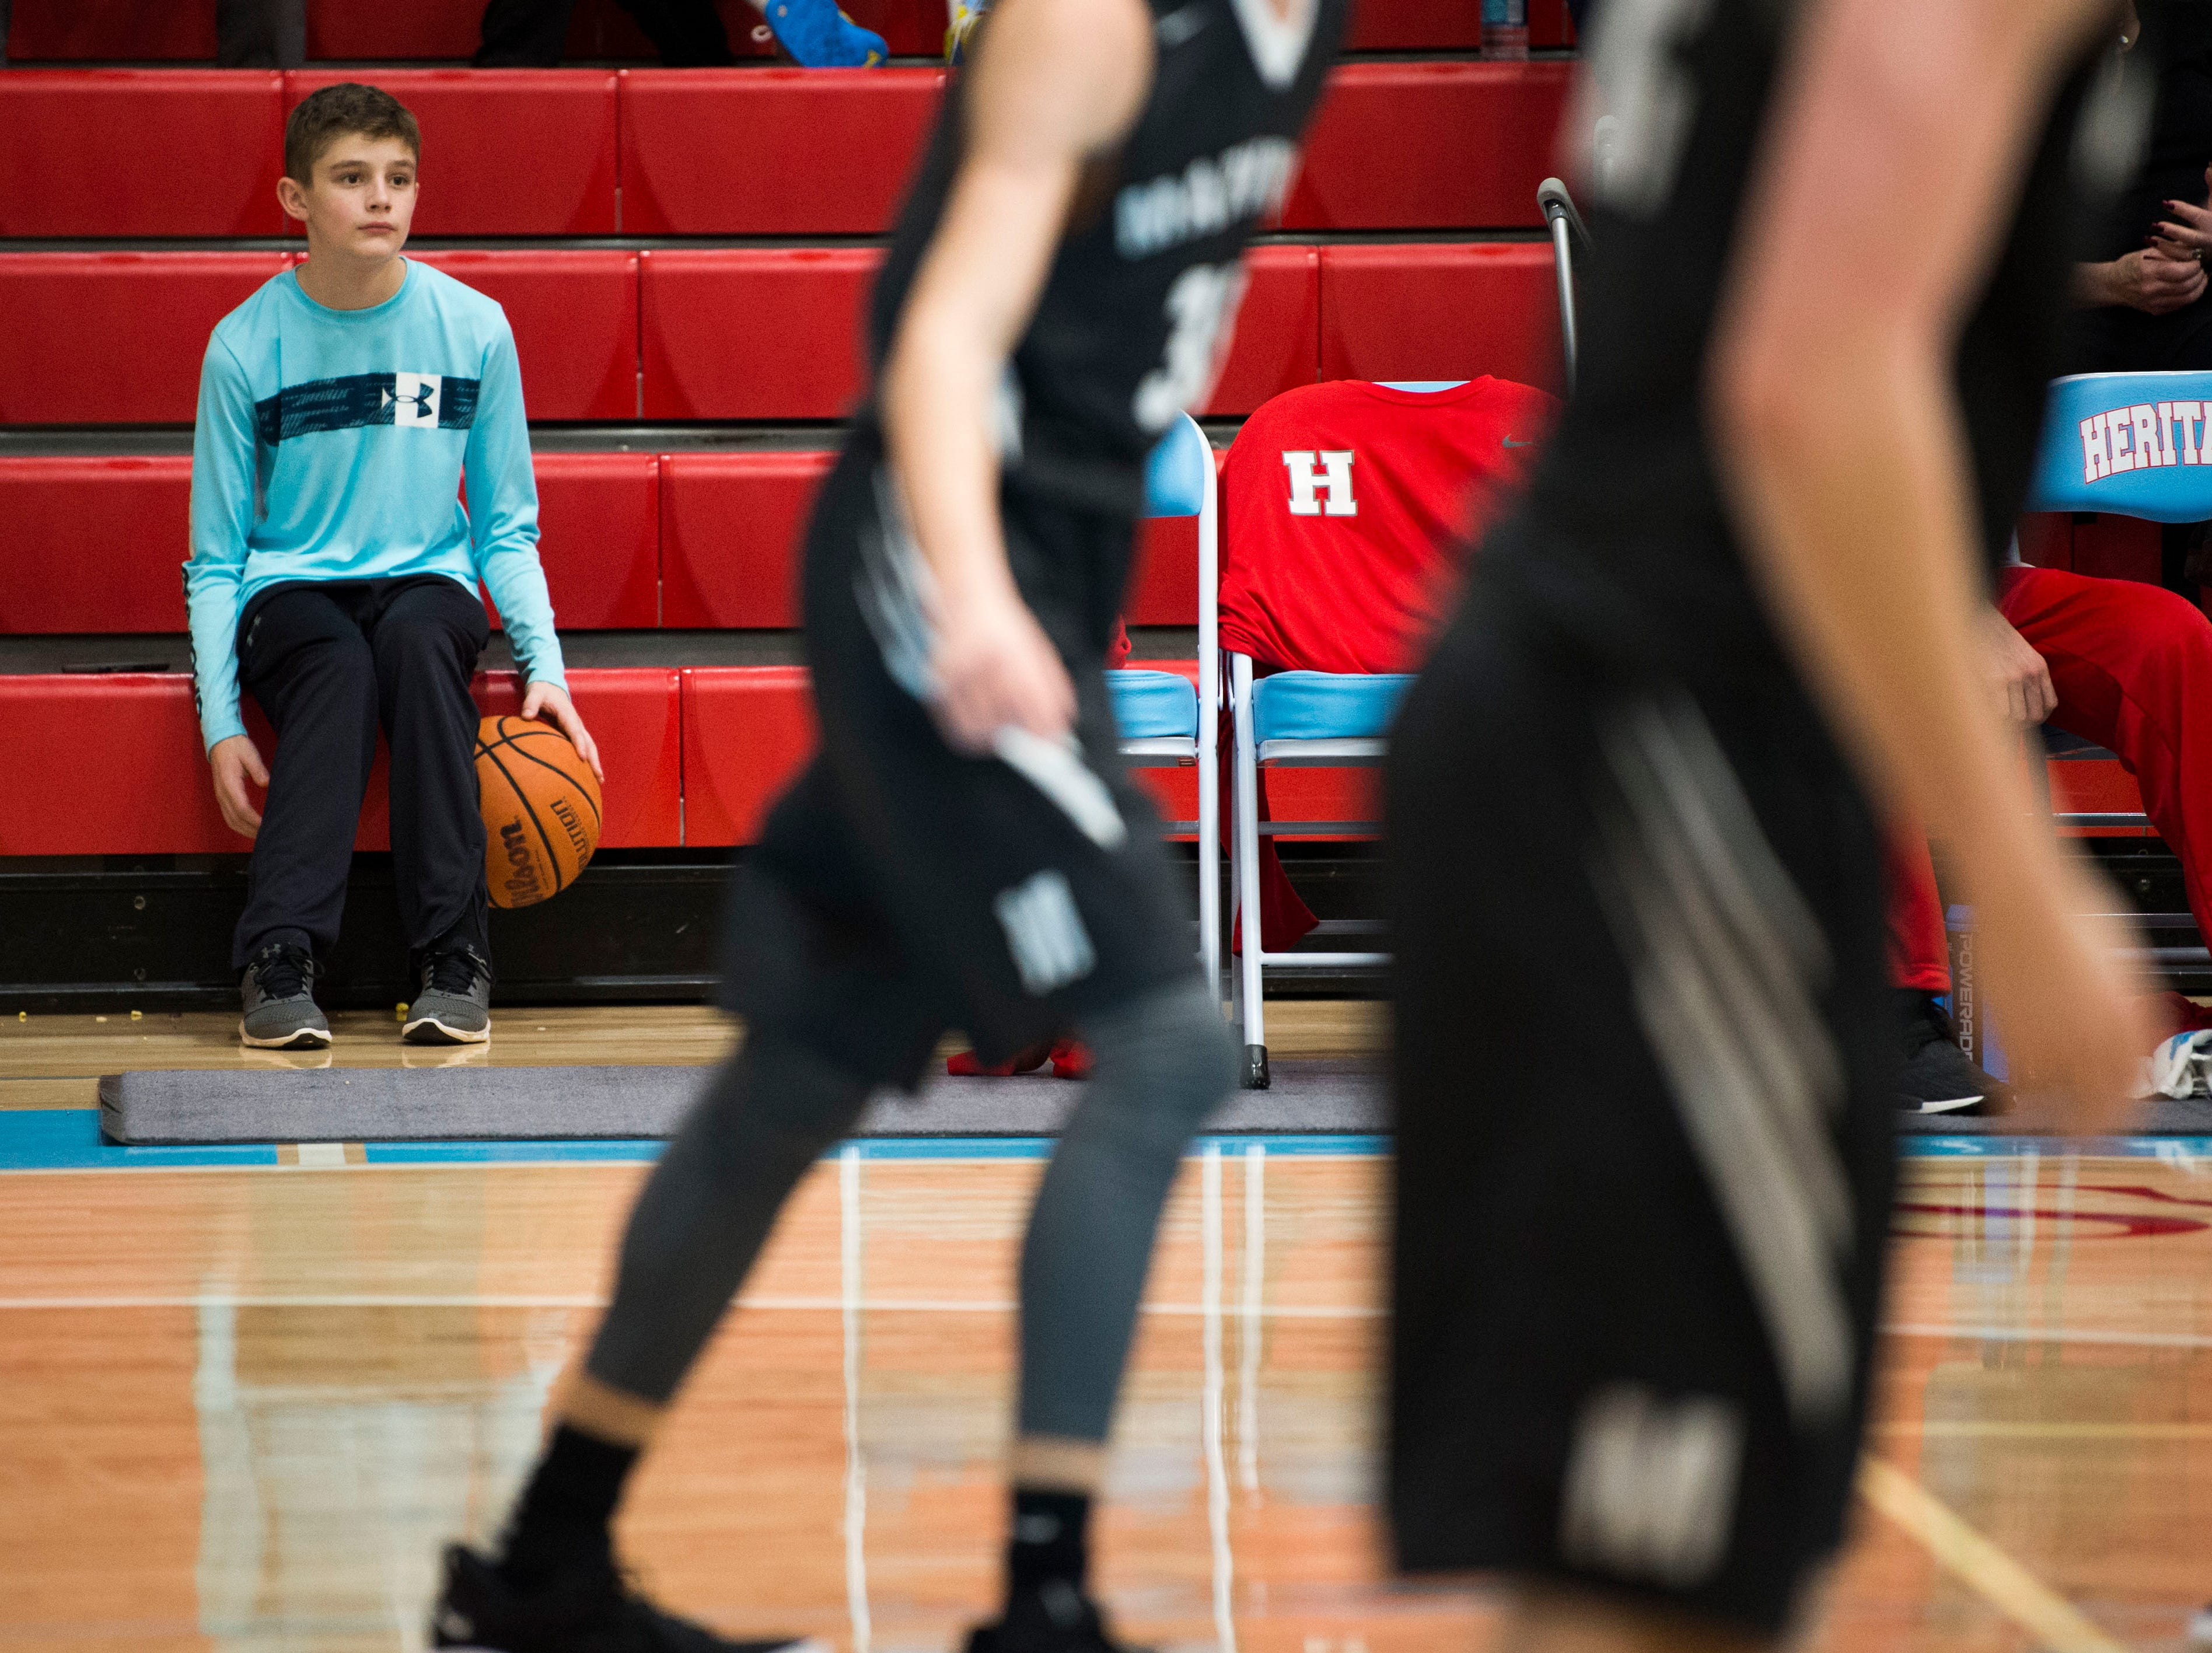 Heritage fan Parker King, 12, dribbles a ball on the bleachers during a high school basketball game between Maryville and Heritage at Heritage Friday, Jan. 4, 2019. Both Maryville boys and girls teams beat Heritage.